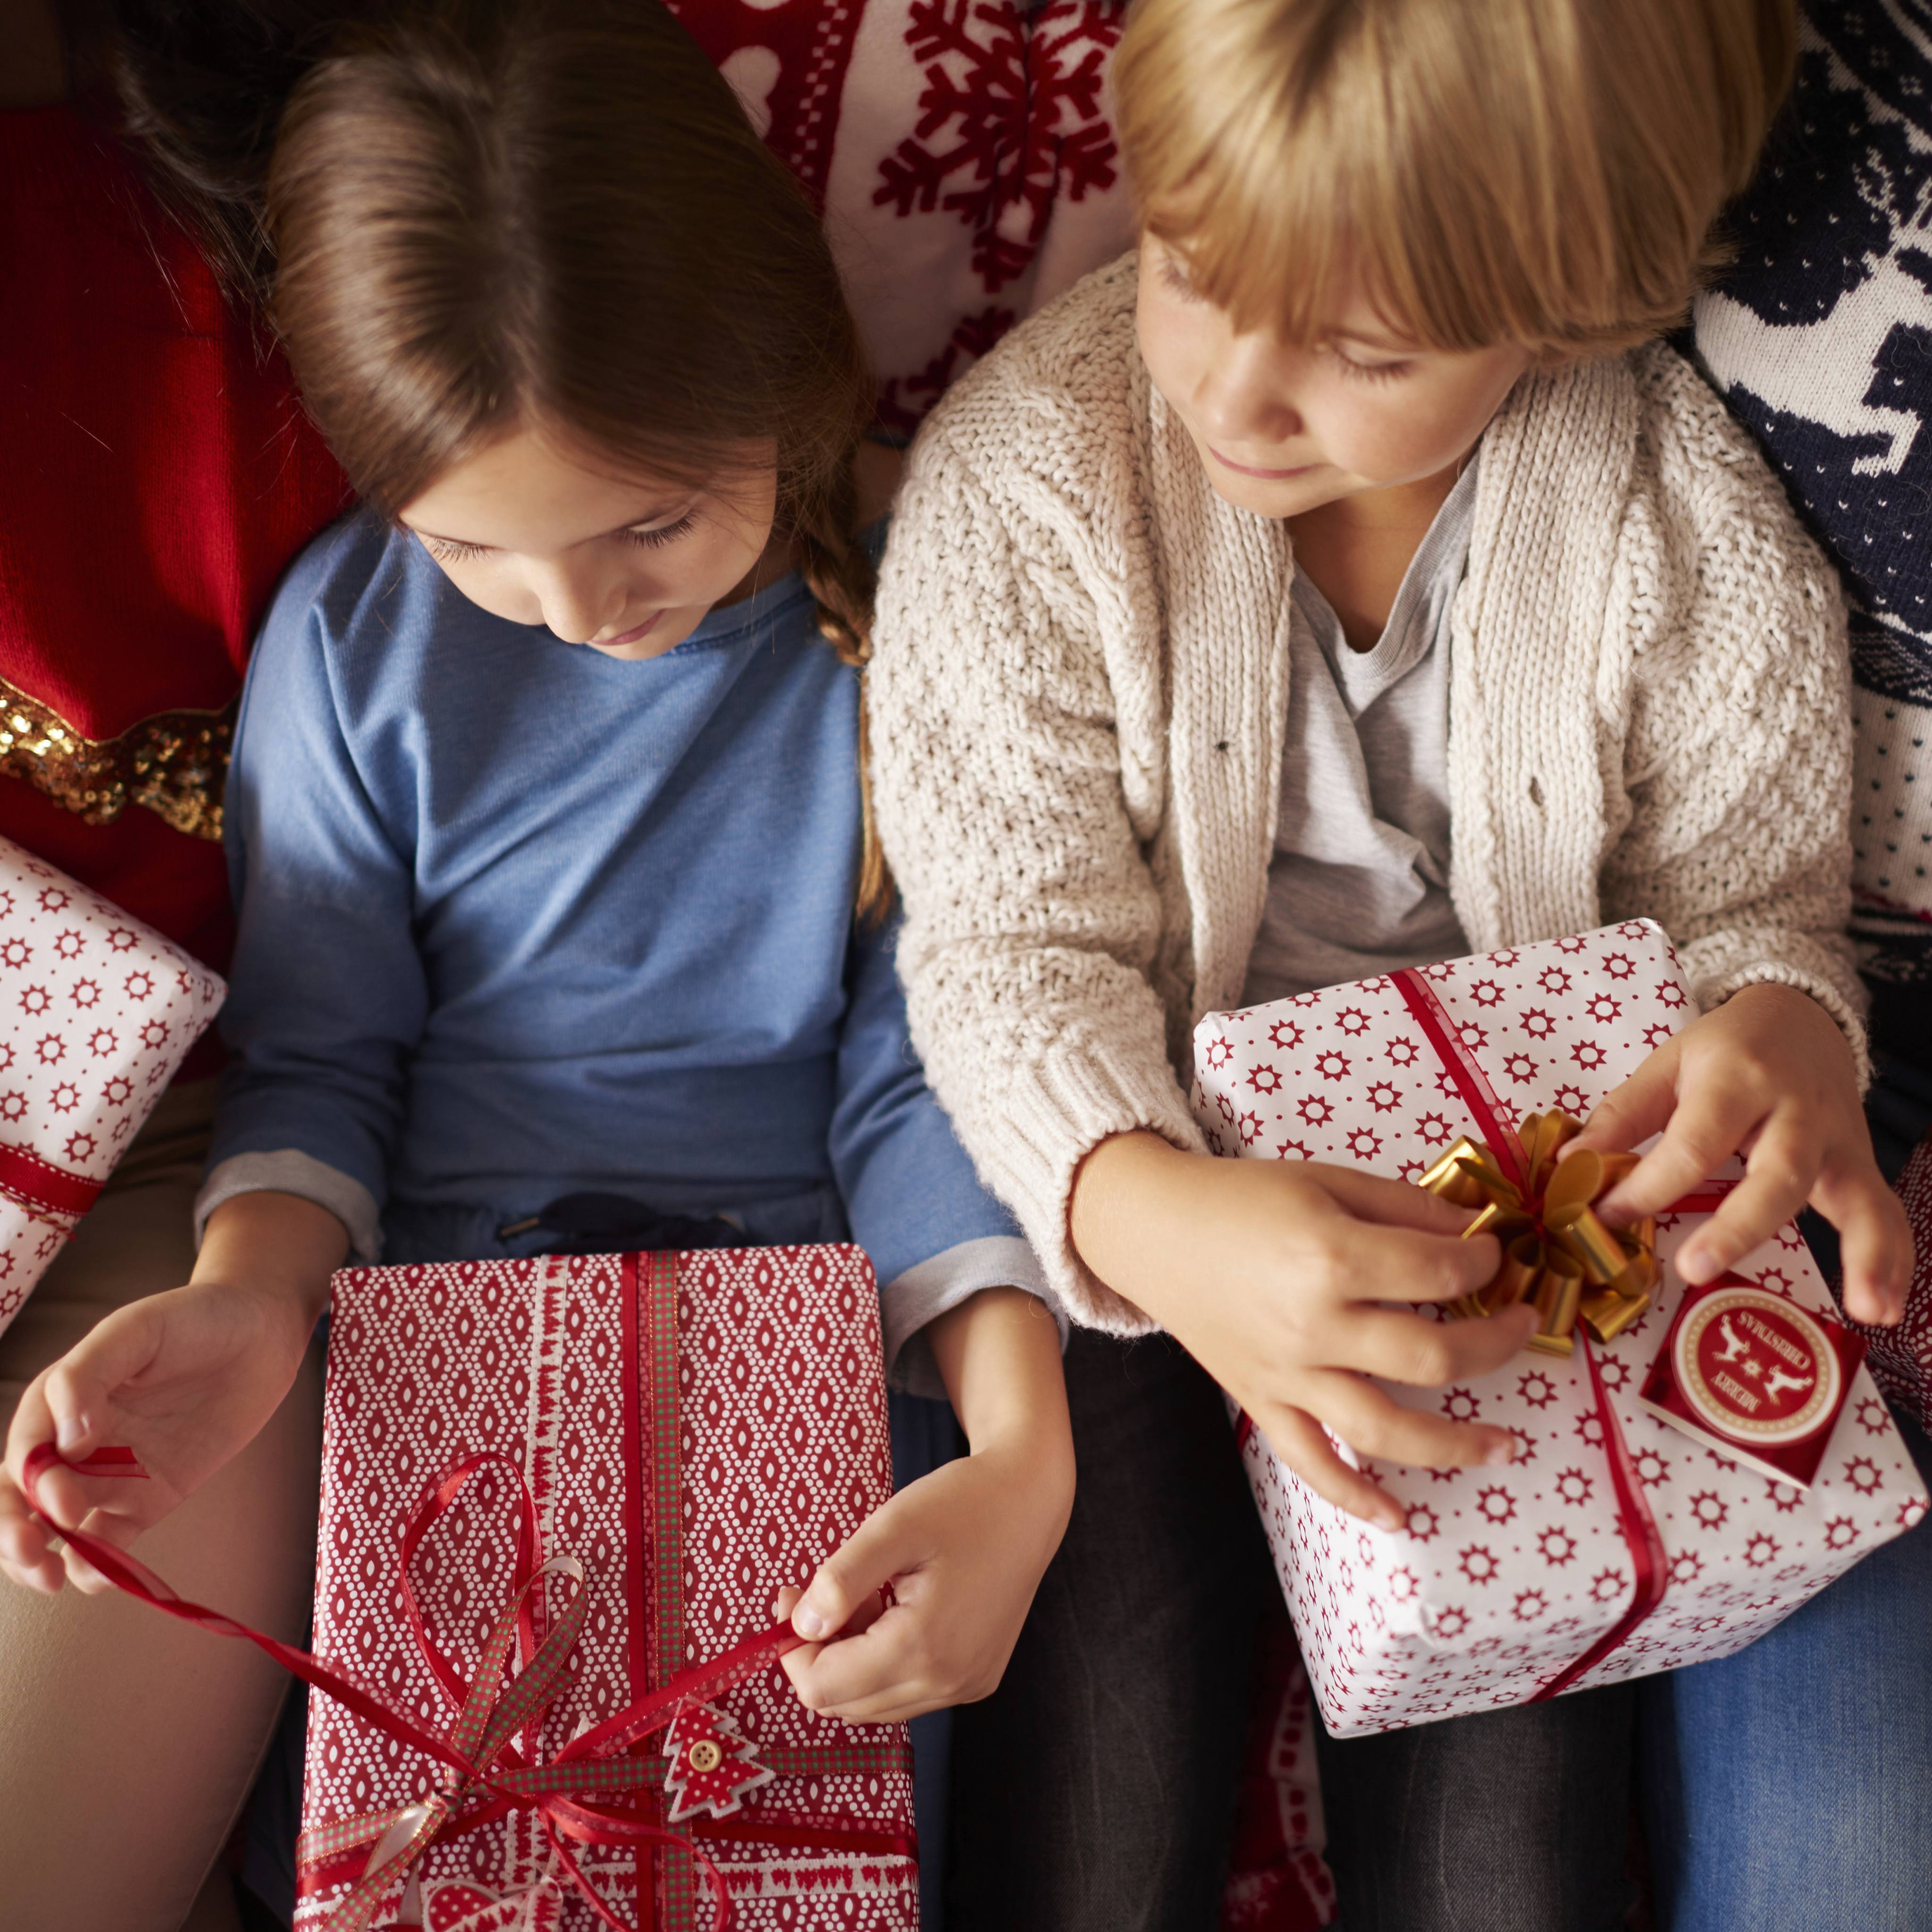 a couple of children opening family Christmas presents and gifts